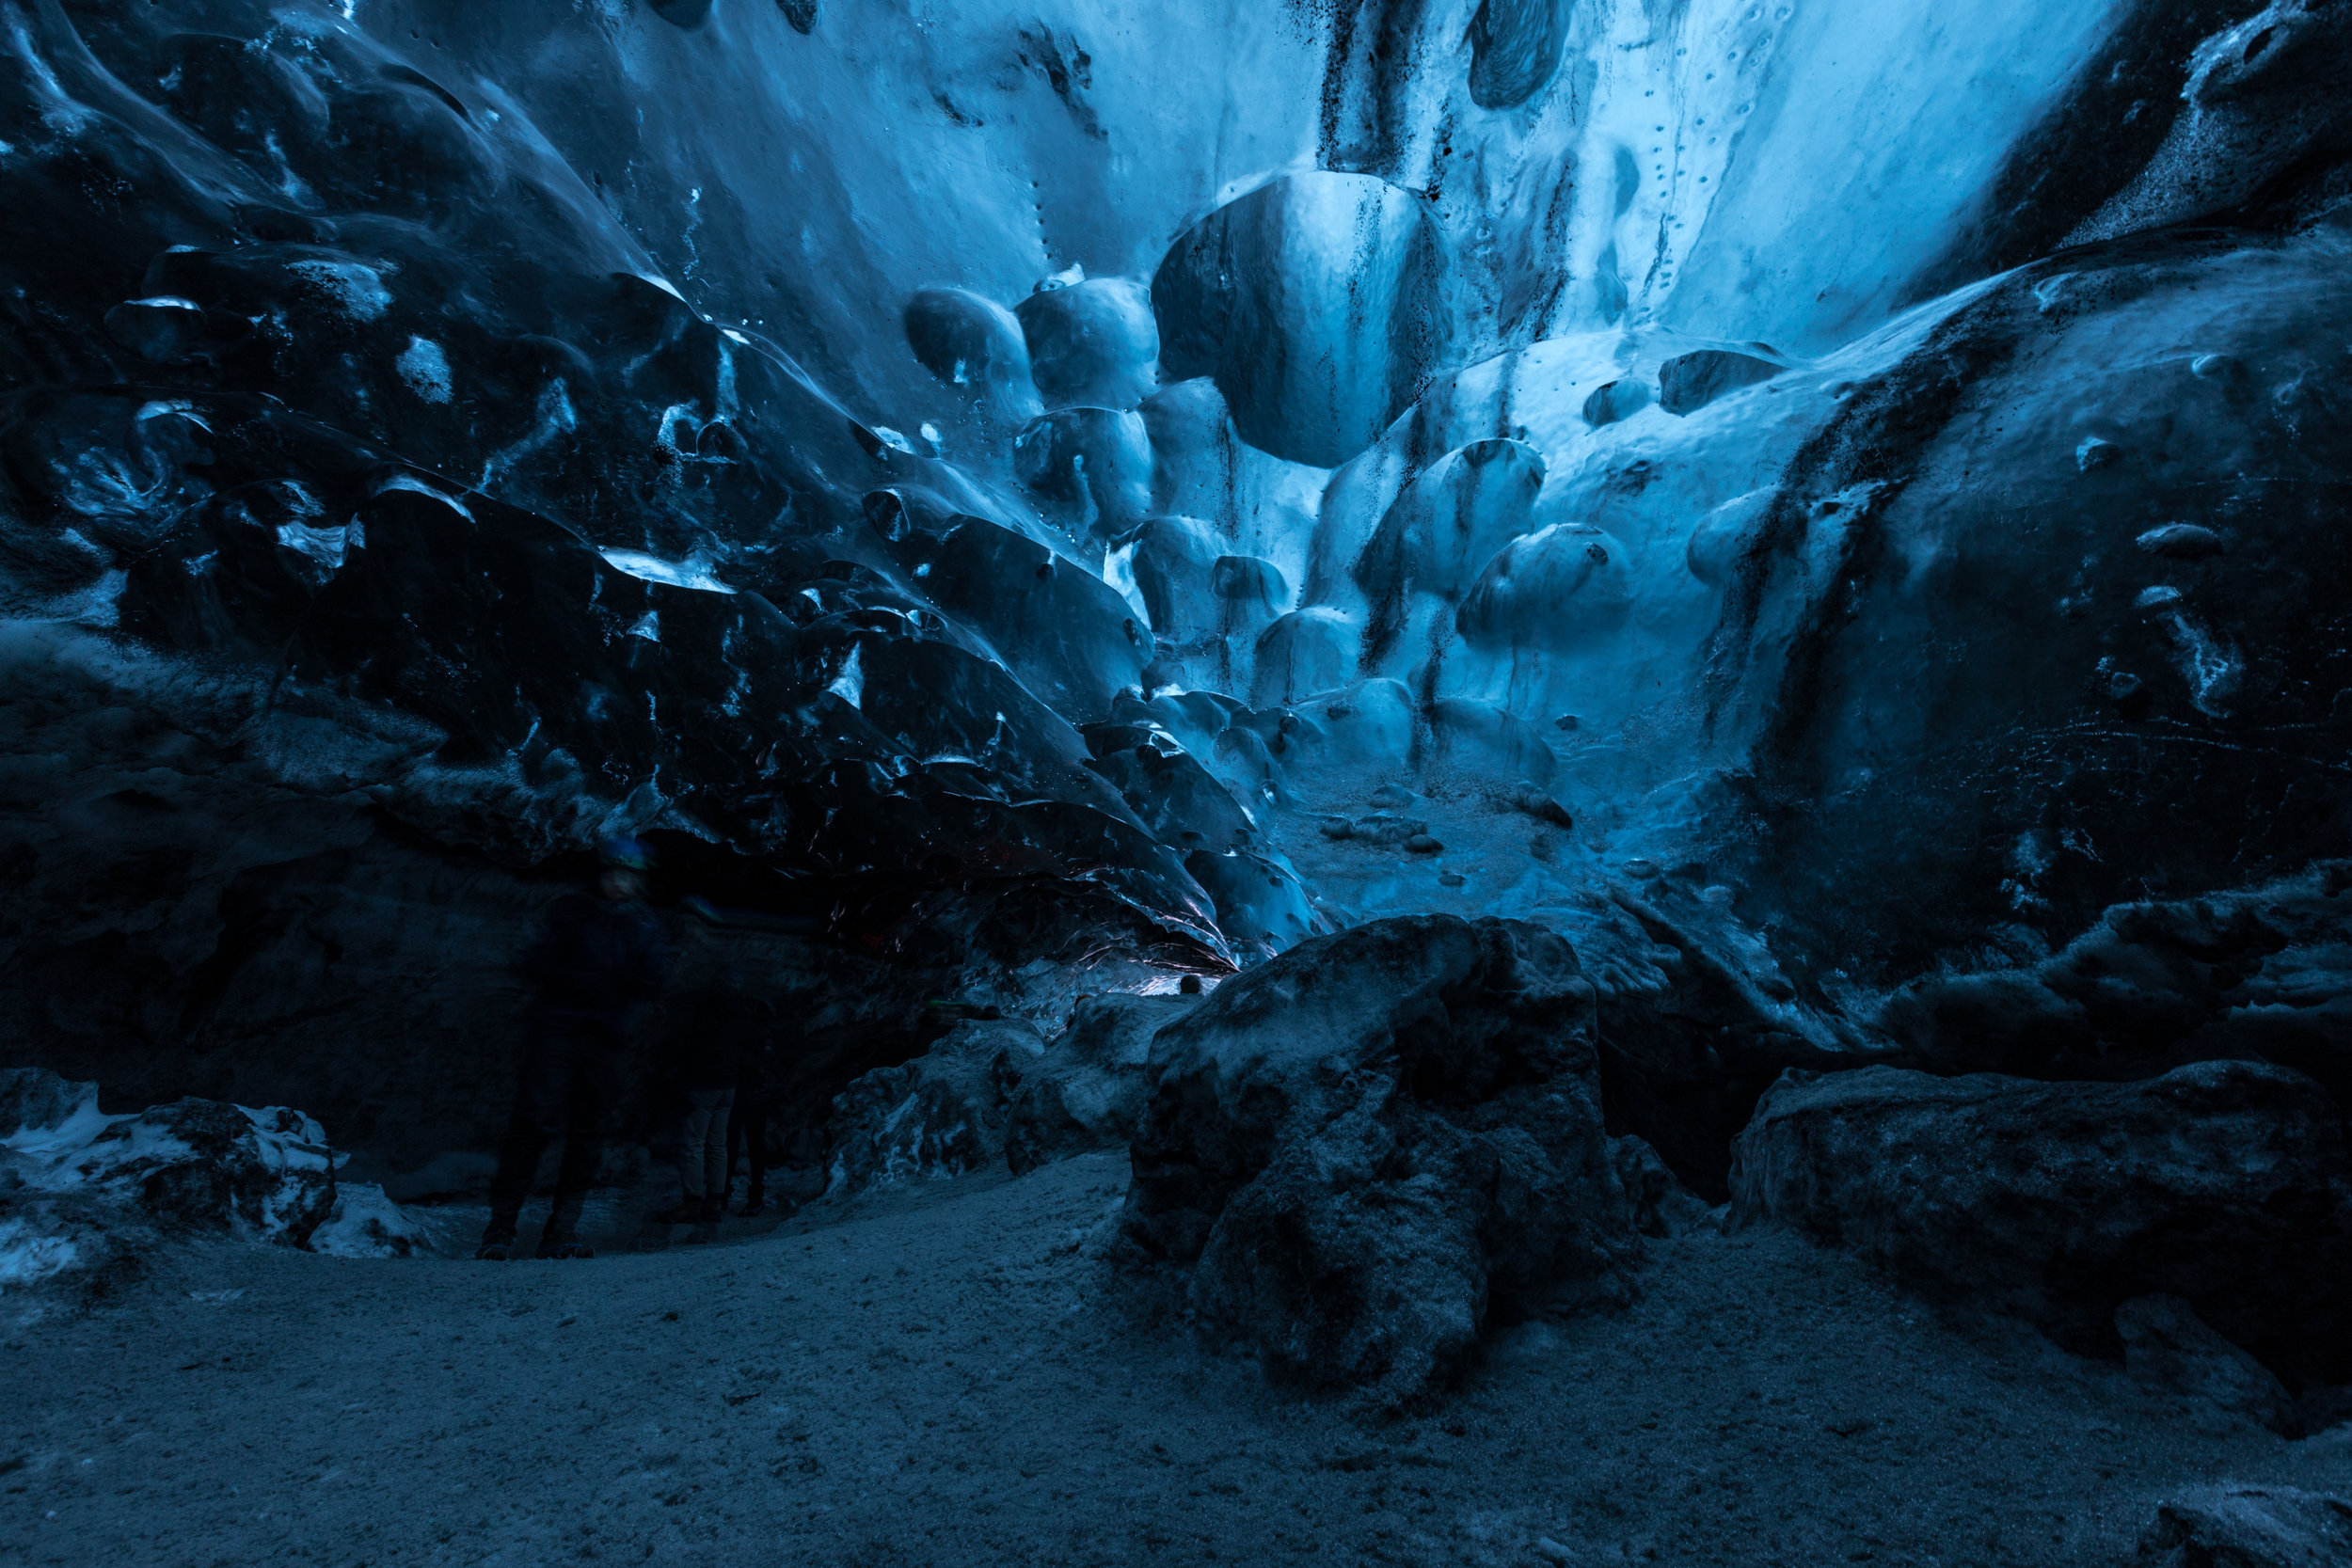 20170117-17.01.17_Ice Caves_5D4_BK3-46.jpg